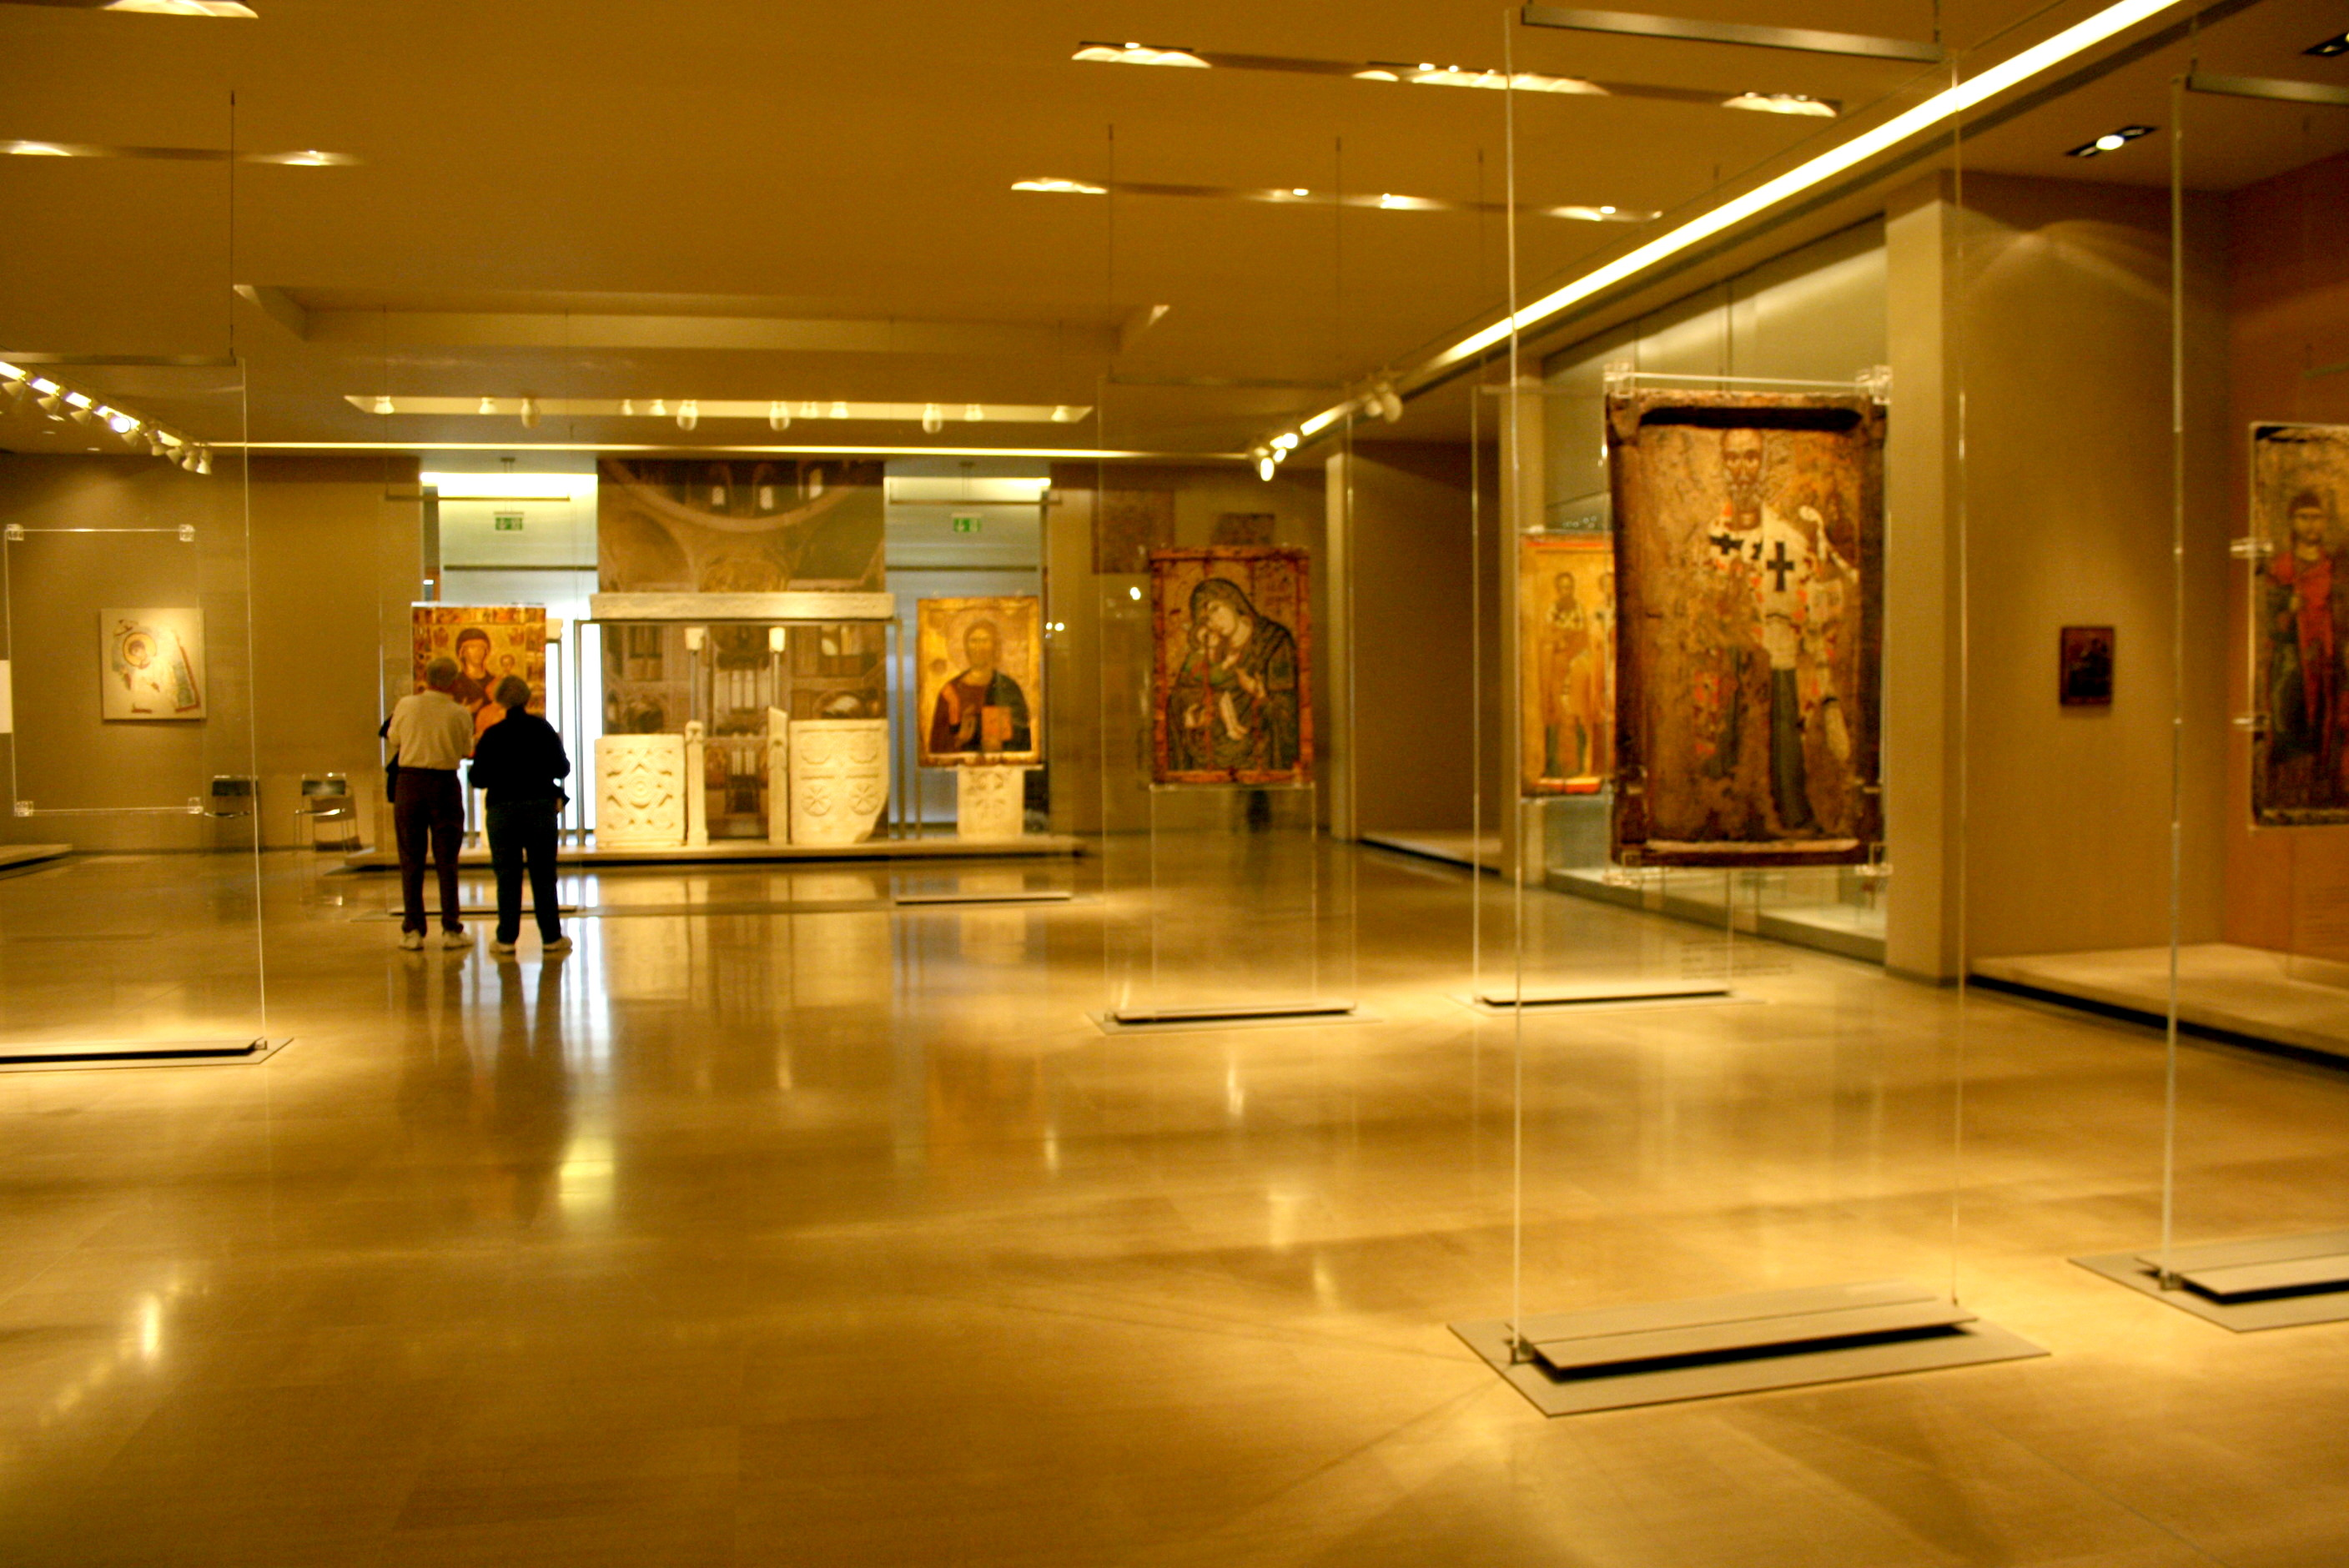 https://i1.wp.com/upload.wikimedia.org/wikipedia/commons/0/0f/1956_-_Byzantine_Museum,_Athens_-_Room_of_the_icones_-_Photo_by_Giovanni_Dall%27Orto,_Nov_12_2009.jpg